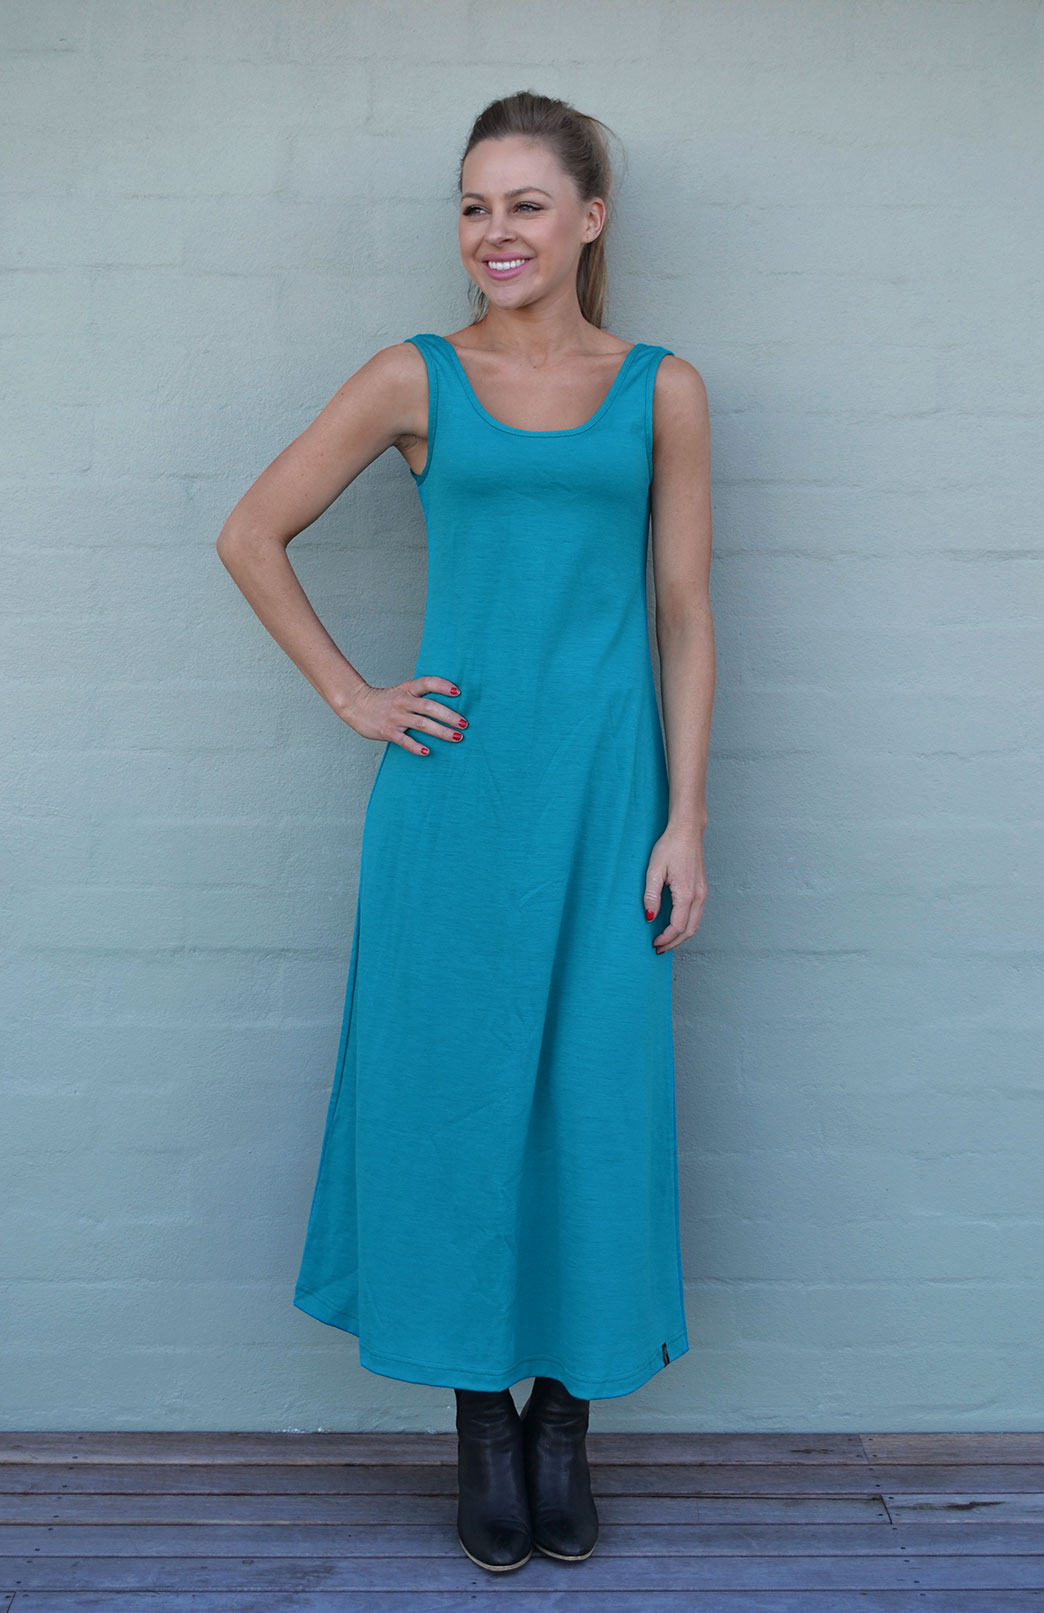 Maxi Dress - Plain - Women's Merino Wool Turquoise Maxi Dress with Scoop Neckline - Smitten Merino Tasmania Australia